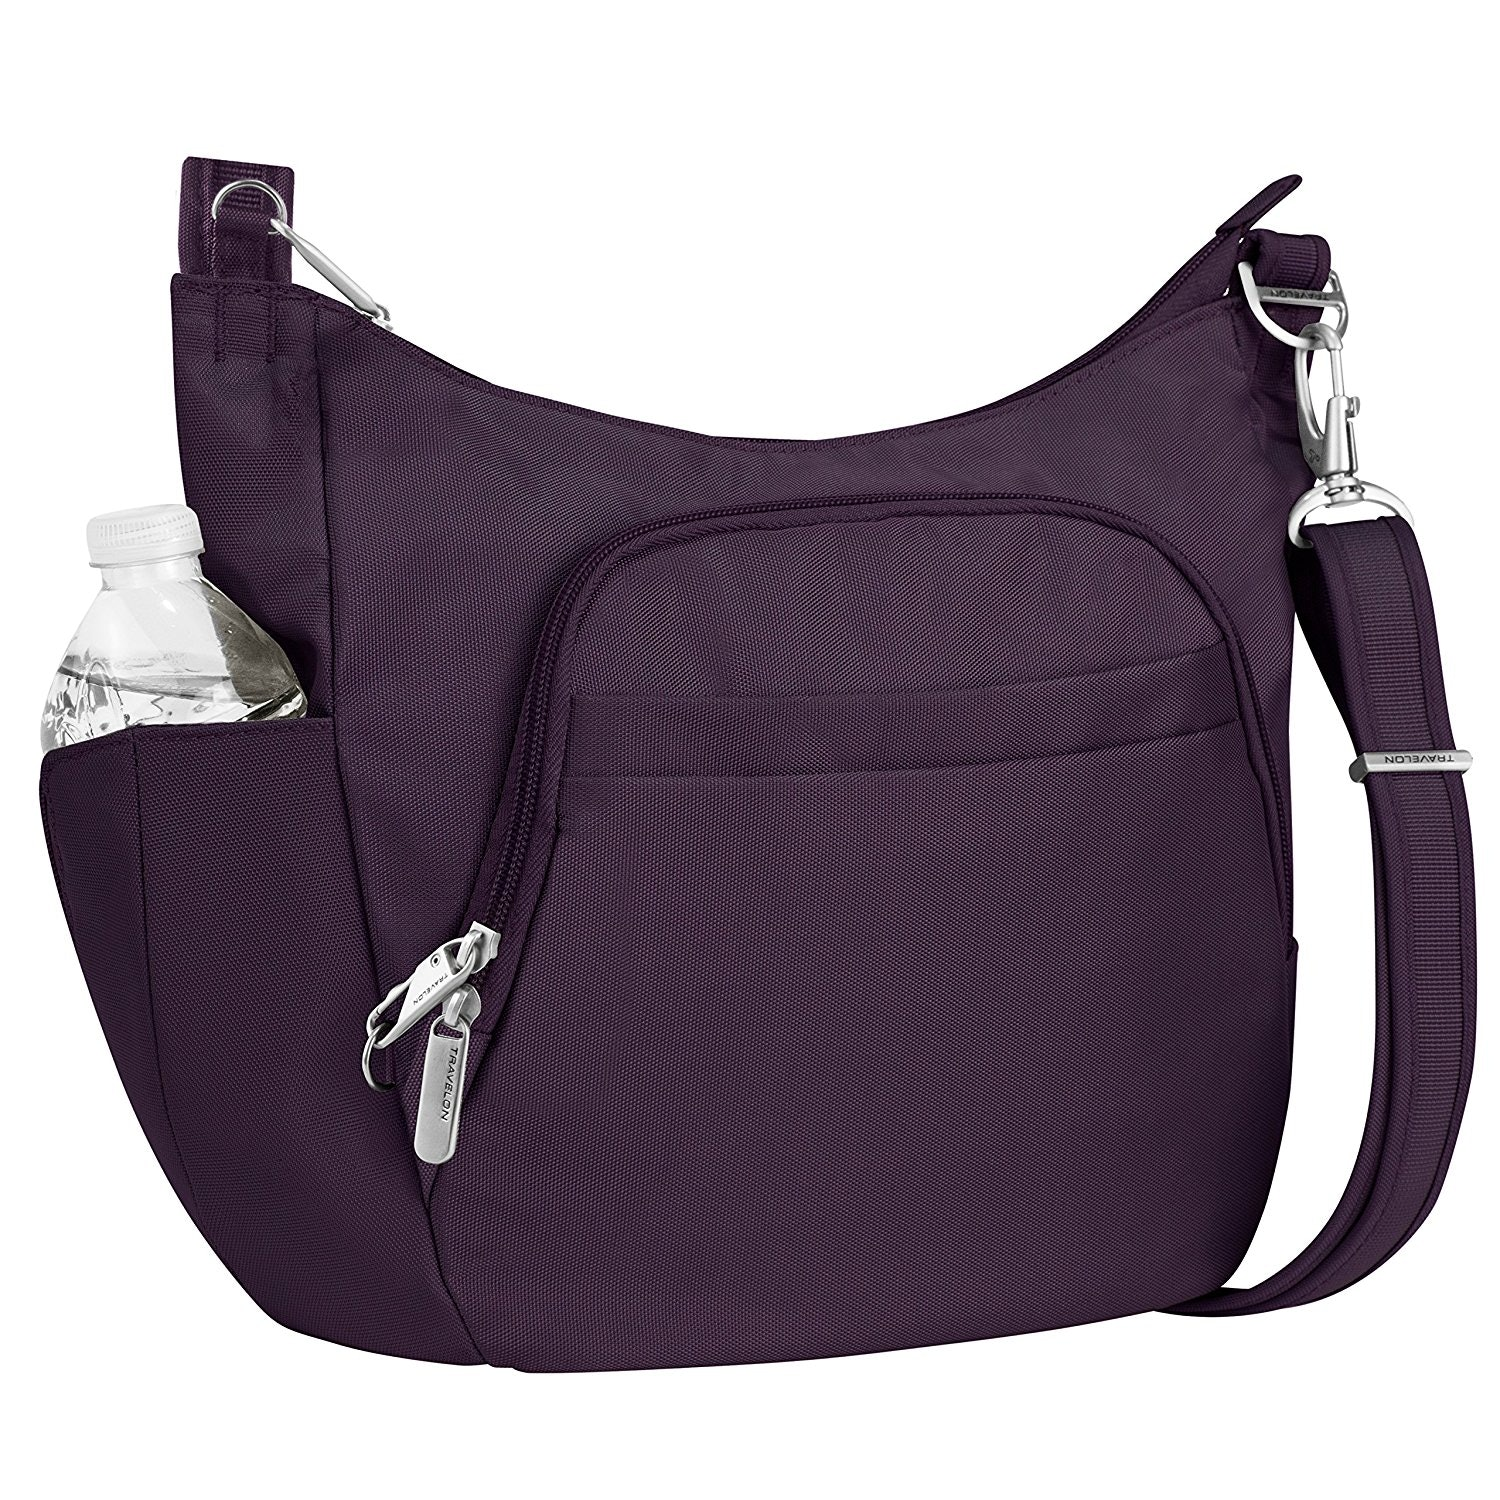 597b229ccca8 The 6 Best Crossbody Bags For Travel